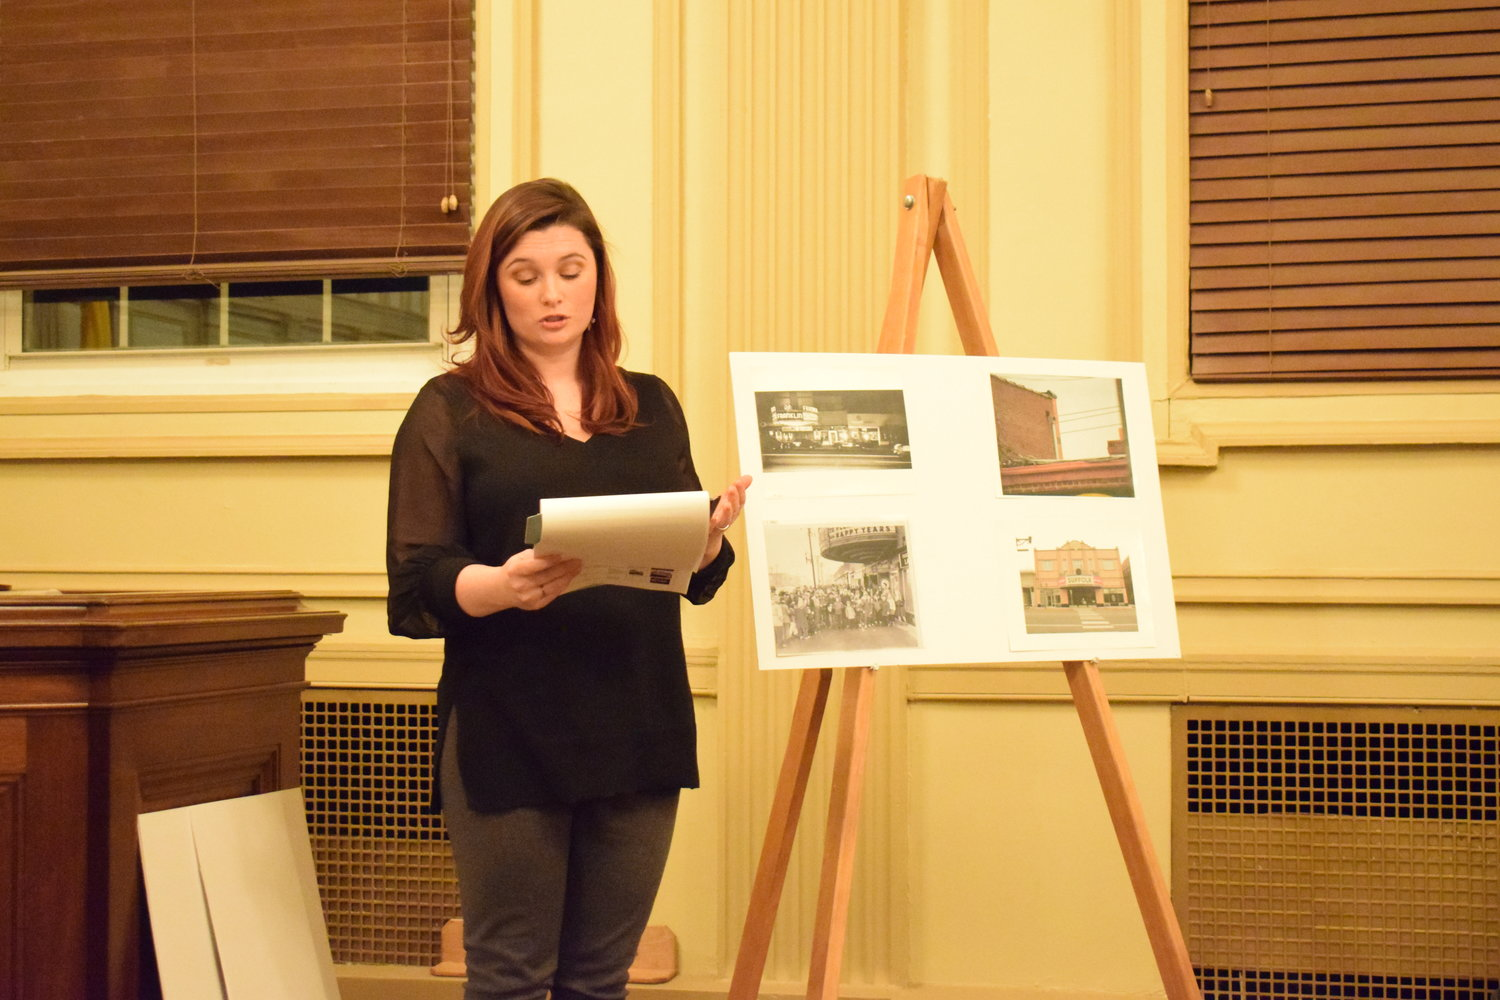 Franklin Square Civic Association member Katherine Tarascio made her case for the theater building to be considered for landmark status by the Town of Hempstead on Feb. 26.